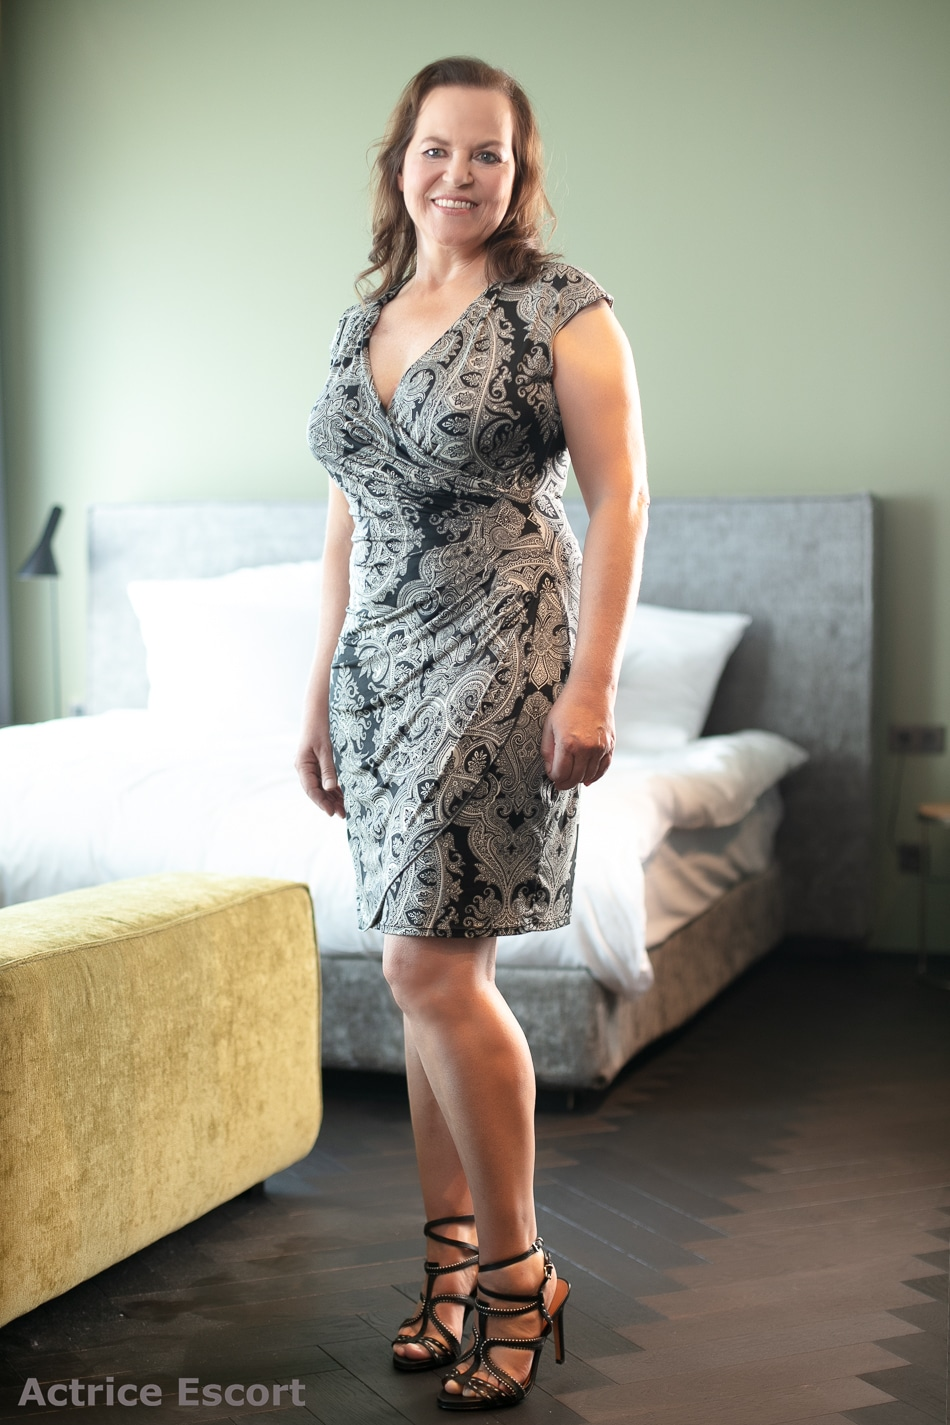 Bettina Escortservice Duesseldorf(14)